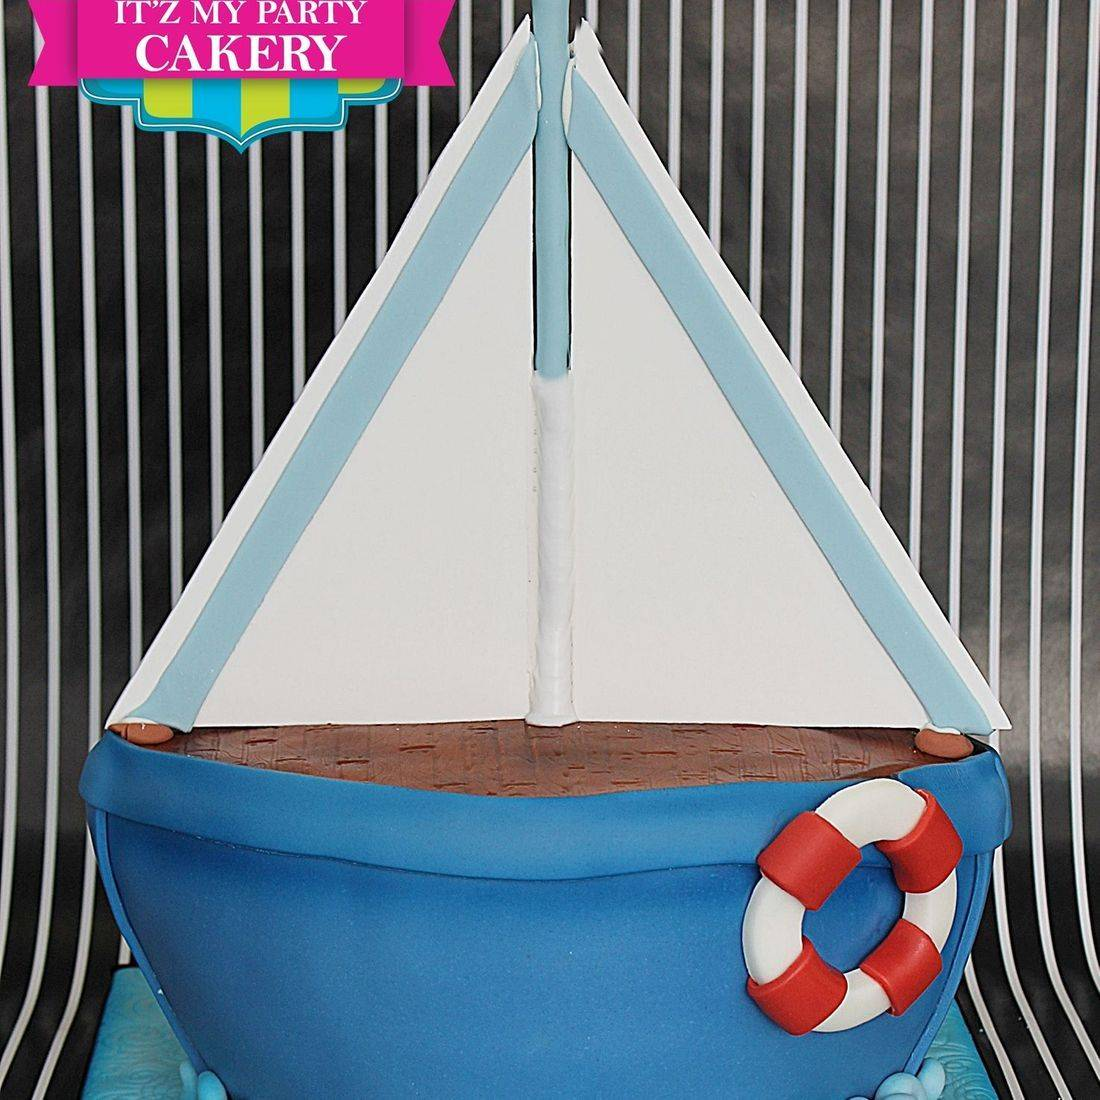 Sail Boat Sea Water Cake Carved Dimensional Cake Milwaukee